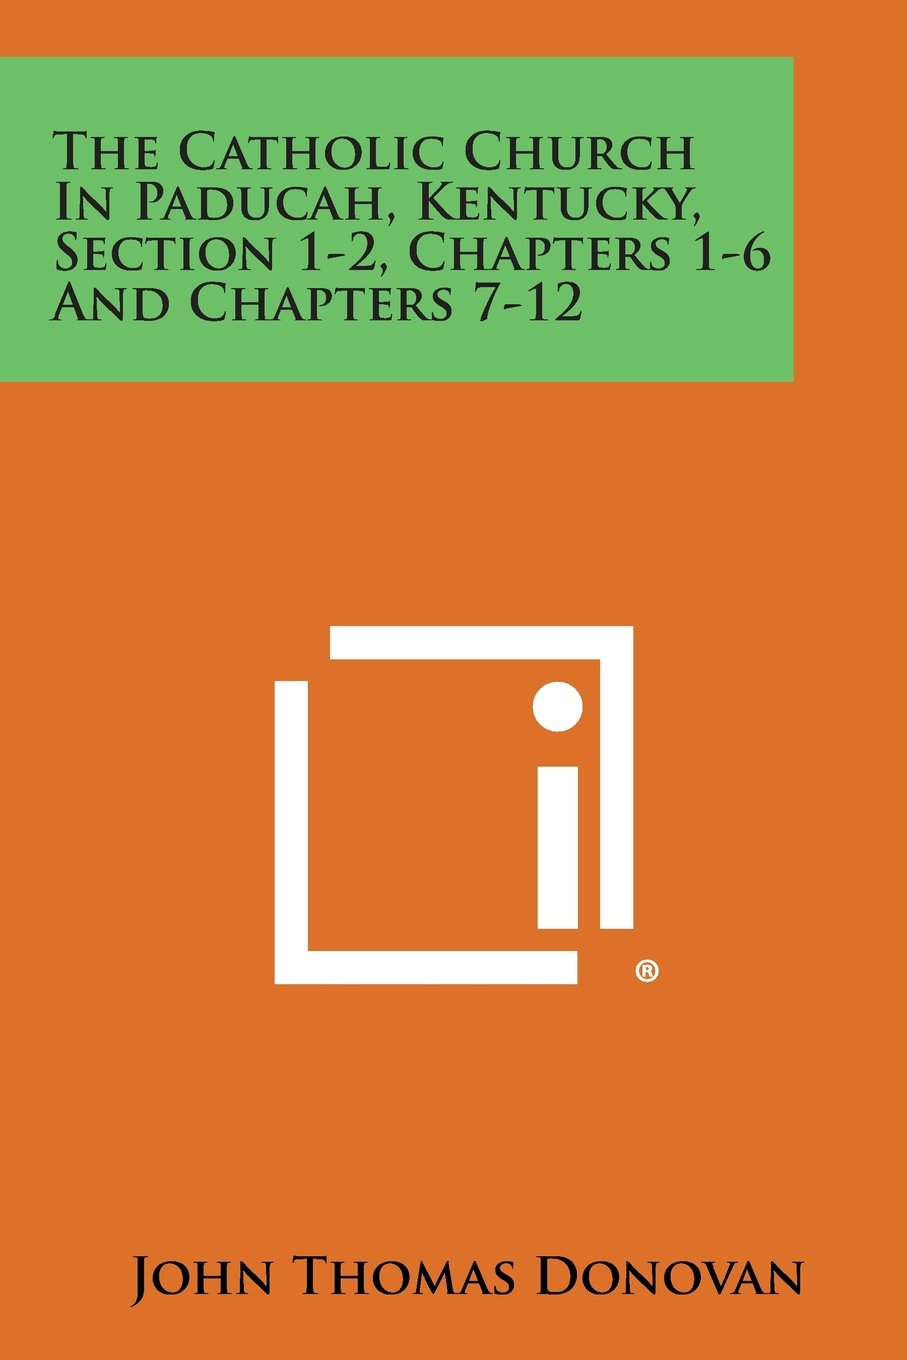 The Catholic Church in Paducah, Kentucky, Section 1-2, Chapters 1-6 and Chapters 7-12 PDF